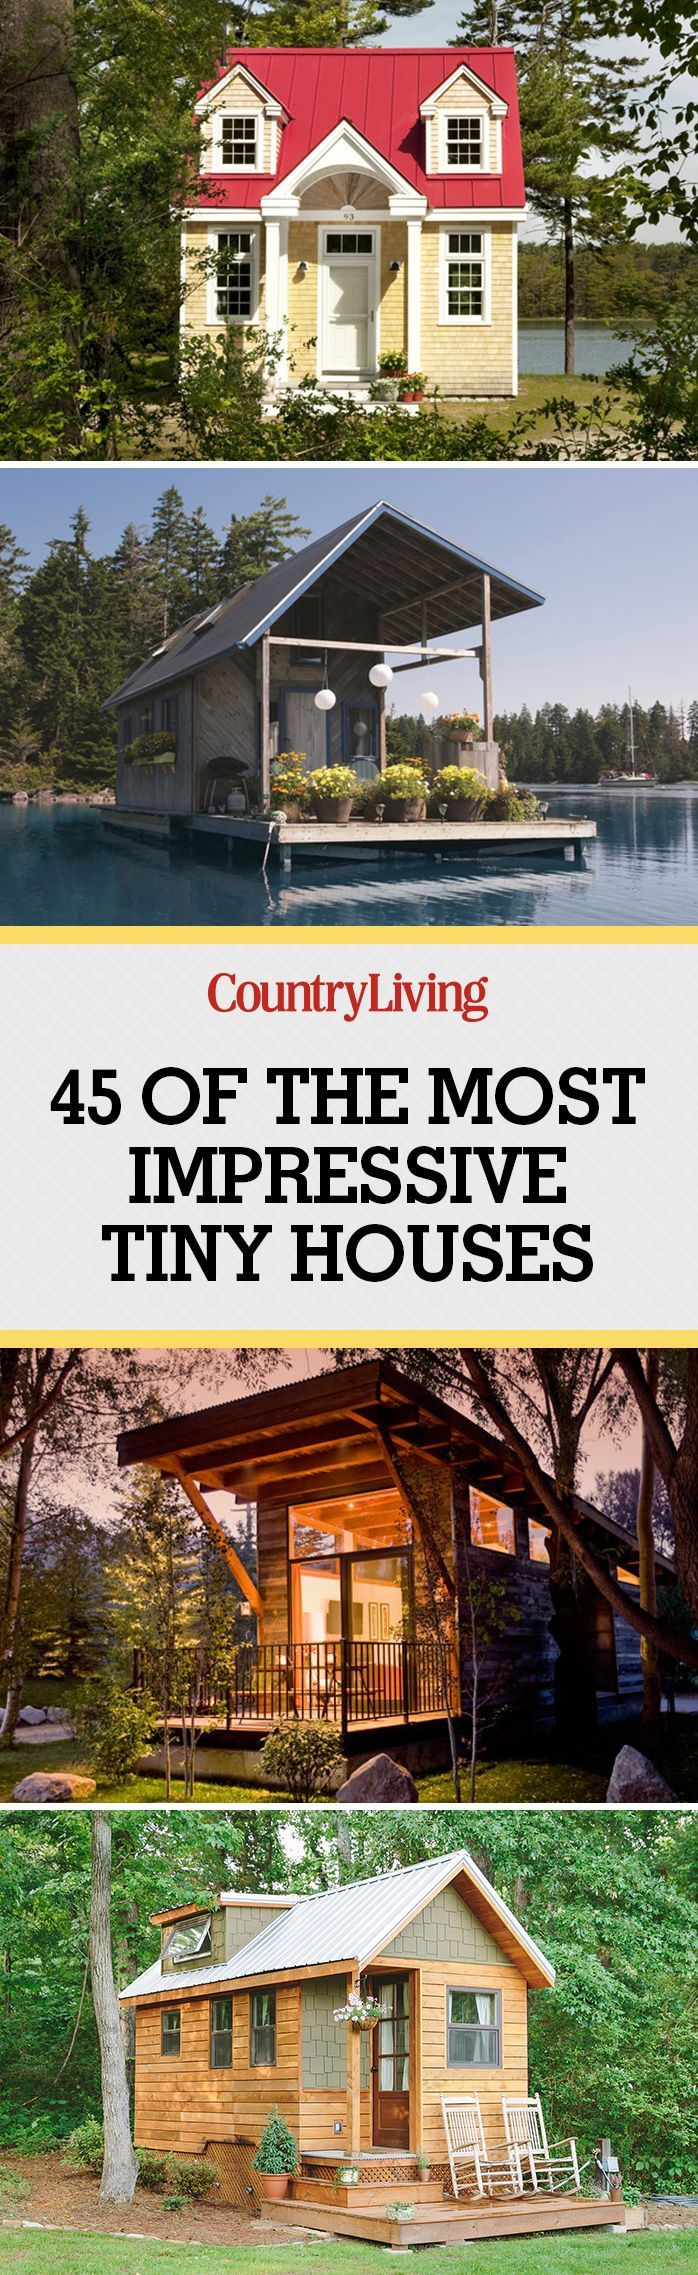 Pin these tiny homes!